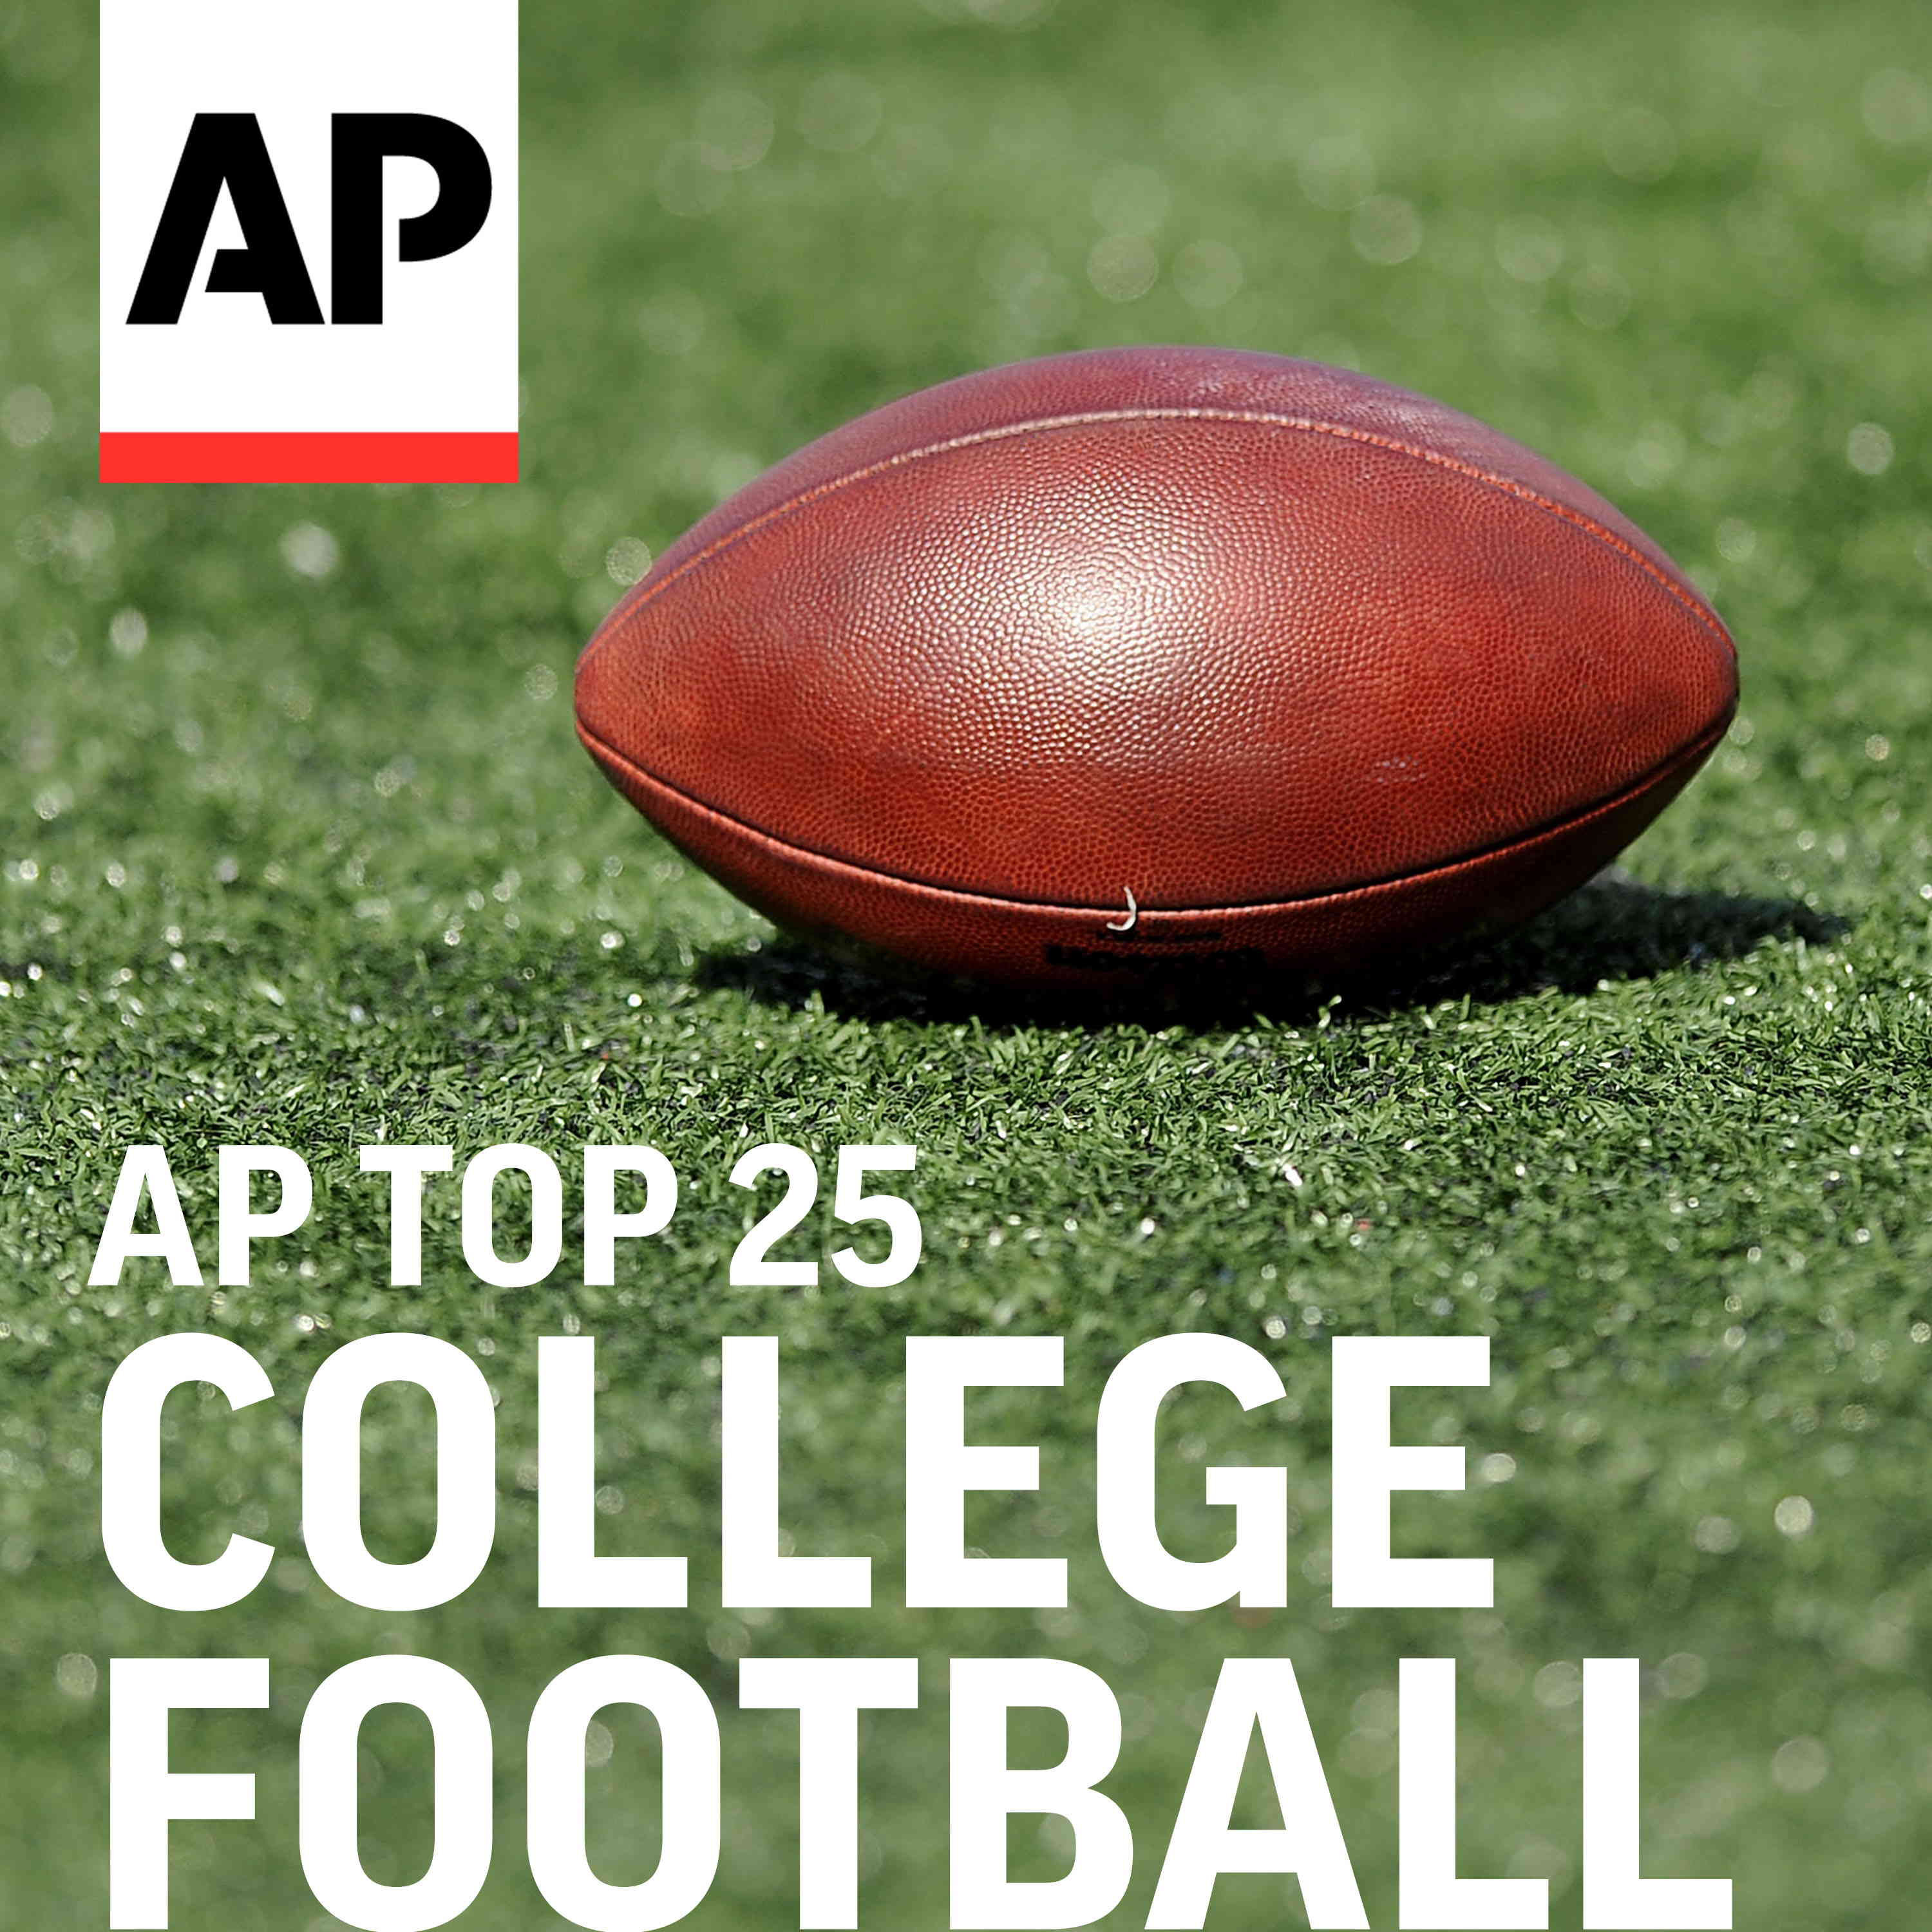 AP Top 25 College Football Podcast | Free Listening on ...